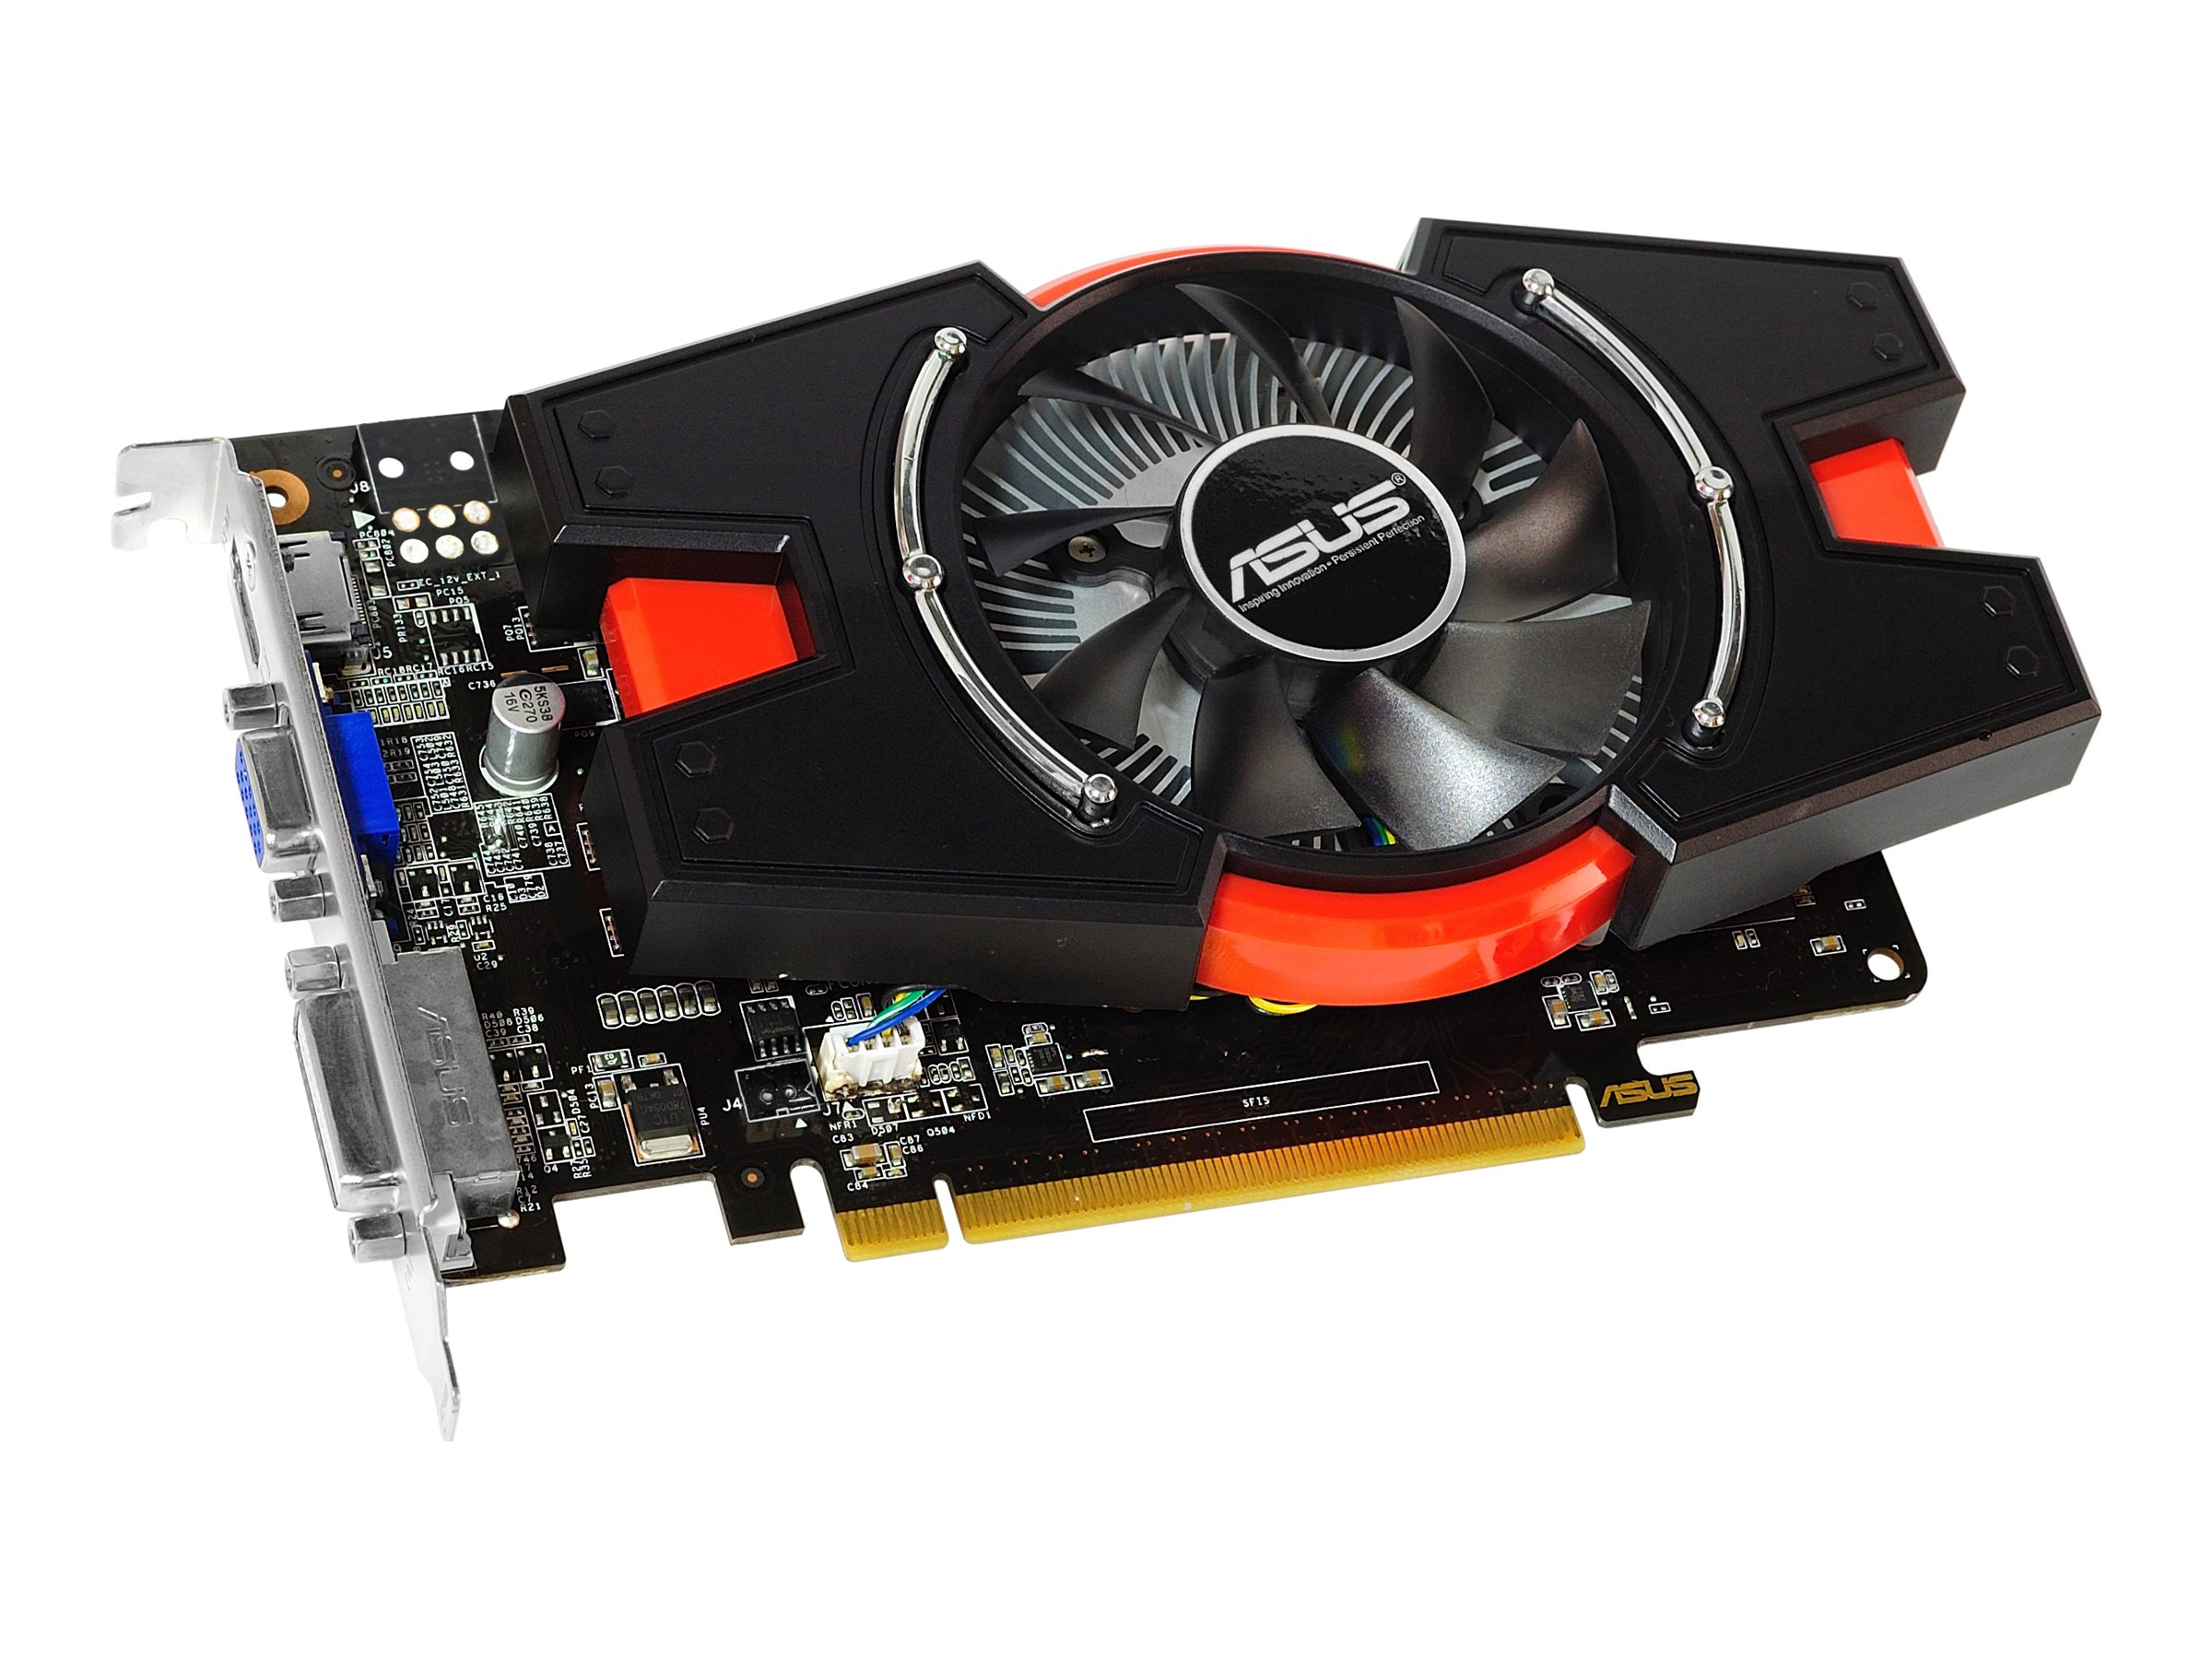 Asus NVIDIA GeForce GTX 650 PCIe 3.0 Graphics Card, 2GB GDDR5